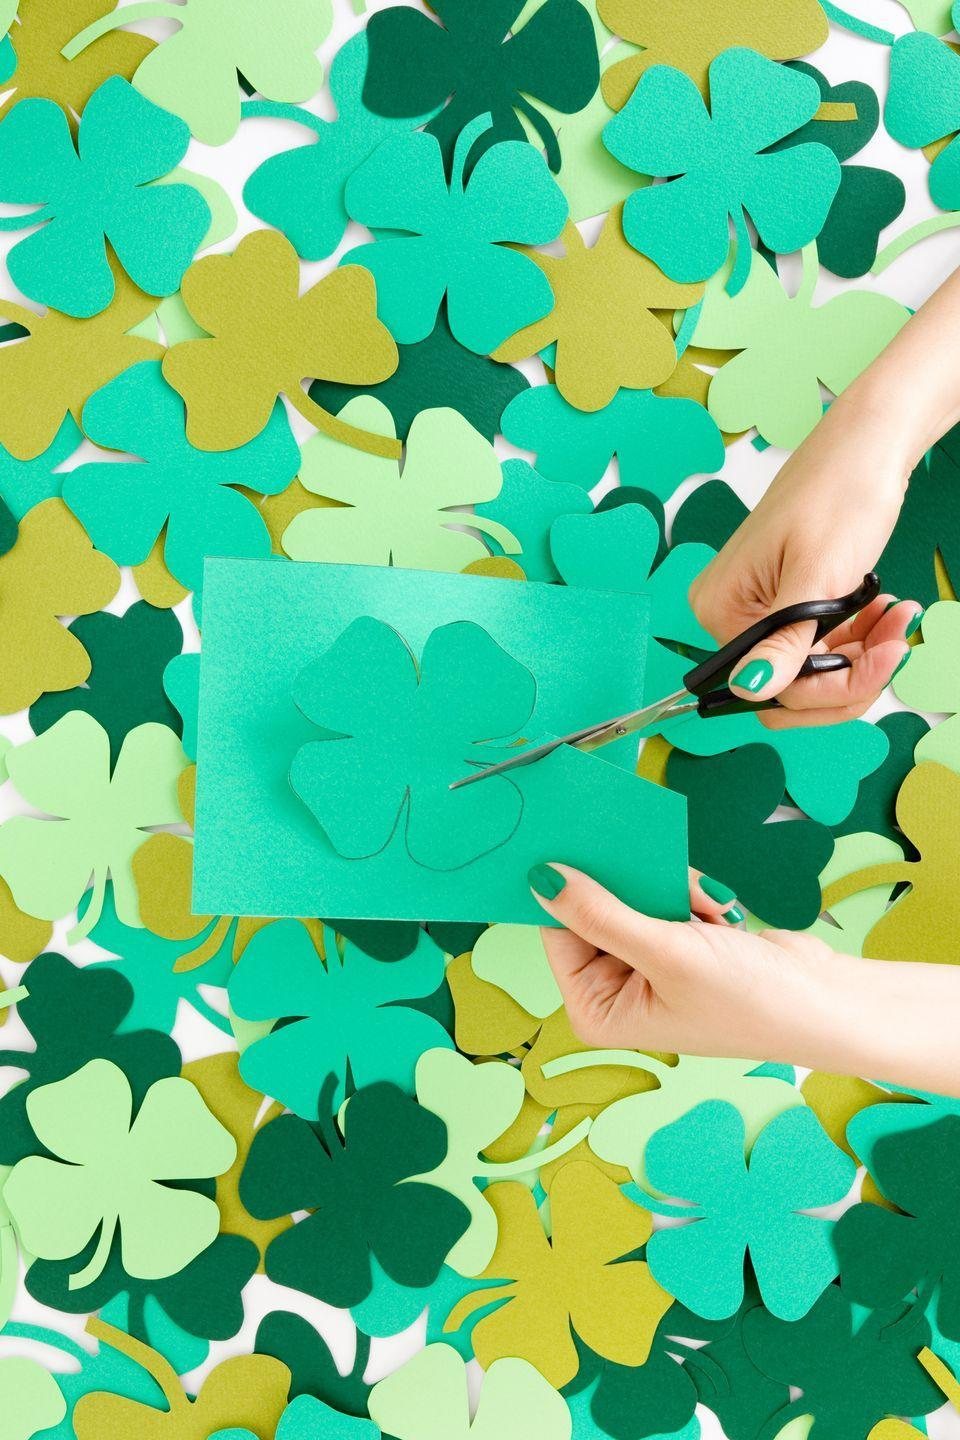 """<p>For a fun-filled afternoon with your kids, plan a crafty St. Patrick's Day. Put together one (or a few!) of the many <a href=""""https://www.countryliving.com/diy-crafts/how-to/g4035/st-patricks-day-crafts/"""" rel=""""nofollow noopener"""" target=""""_blank"""" data-ylk=""""slk:St. Patrick's Day crafts"""" class=""""link rapid-noclick-resp"""">St. Patrick's Day crafts </a>to make some lasting memories with your family this March 17.</p><p><a class=""""link rapid-noclick-resp"""" href=""""https://www.amazon.com/Kid-Made-Modern-Crafts-Library/dp/B07WSJVTR9/?tag=syn-yahoo-20&ascsubtag=%5Bartid%7C10050.g.30796247%5Bsrc%7Cyahoo-us"""" rel=""""nofollow noopener"""" target=""""_blank"""" data-ylk=""""slk:SHOP CRAFT SUPPLIES"""">SHOP CRAFT SUPPLIES</a></p>"""